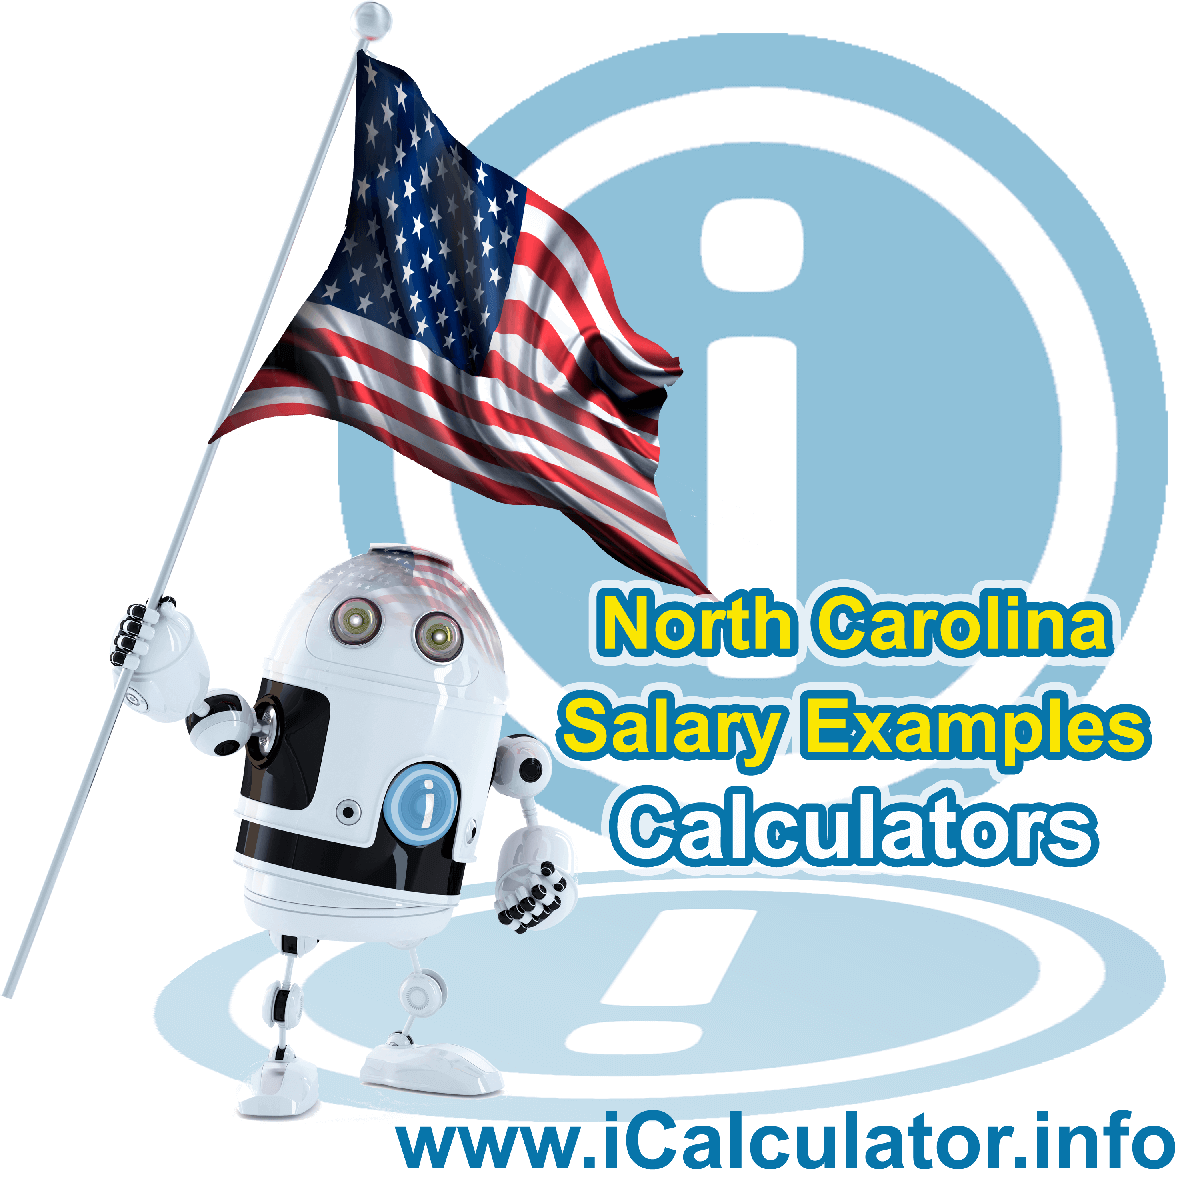 North Carolina Salary Example for $170,000.00 in 2020 | iCalculator | $170,000.00 salary example for employee and employer paying North Carolina State tincome taxes. Detailed salary after tax calculation including North Carolina State Tax, Federal State Tax, Medicare Deductions, Social Security, Capital Gains and other income tax and salary deductions complete with supporting North Carolina state tax tables